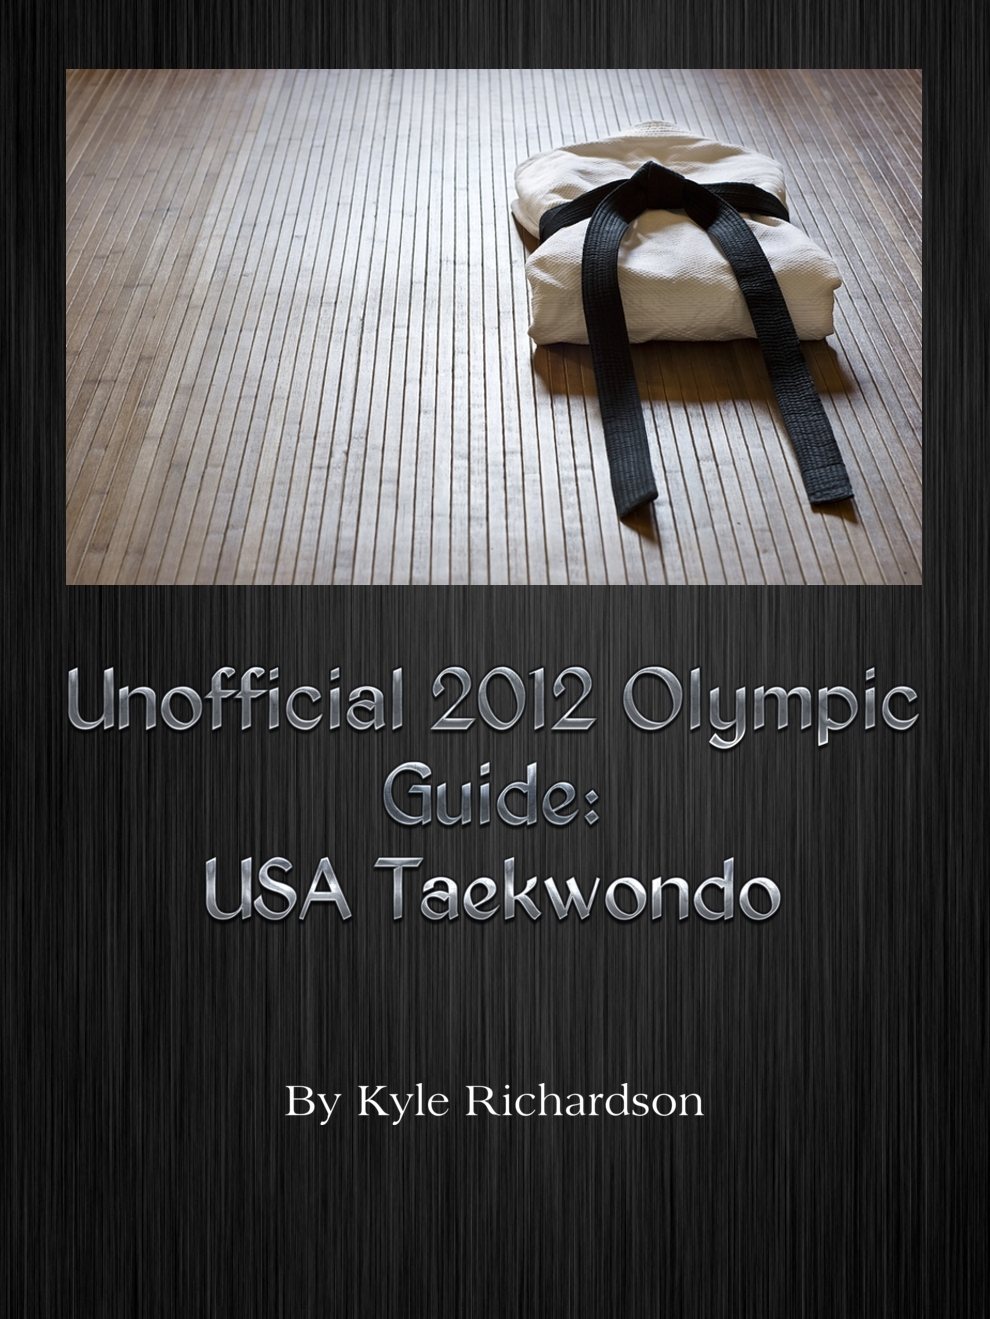 Unofficial 2012 Olympic Guides: USA Taekwondo